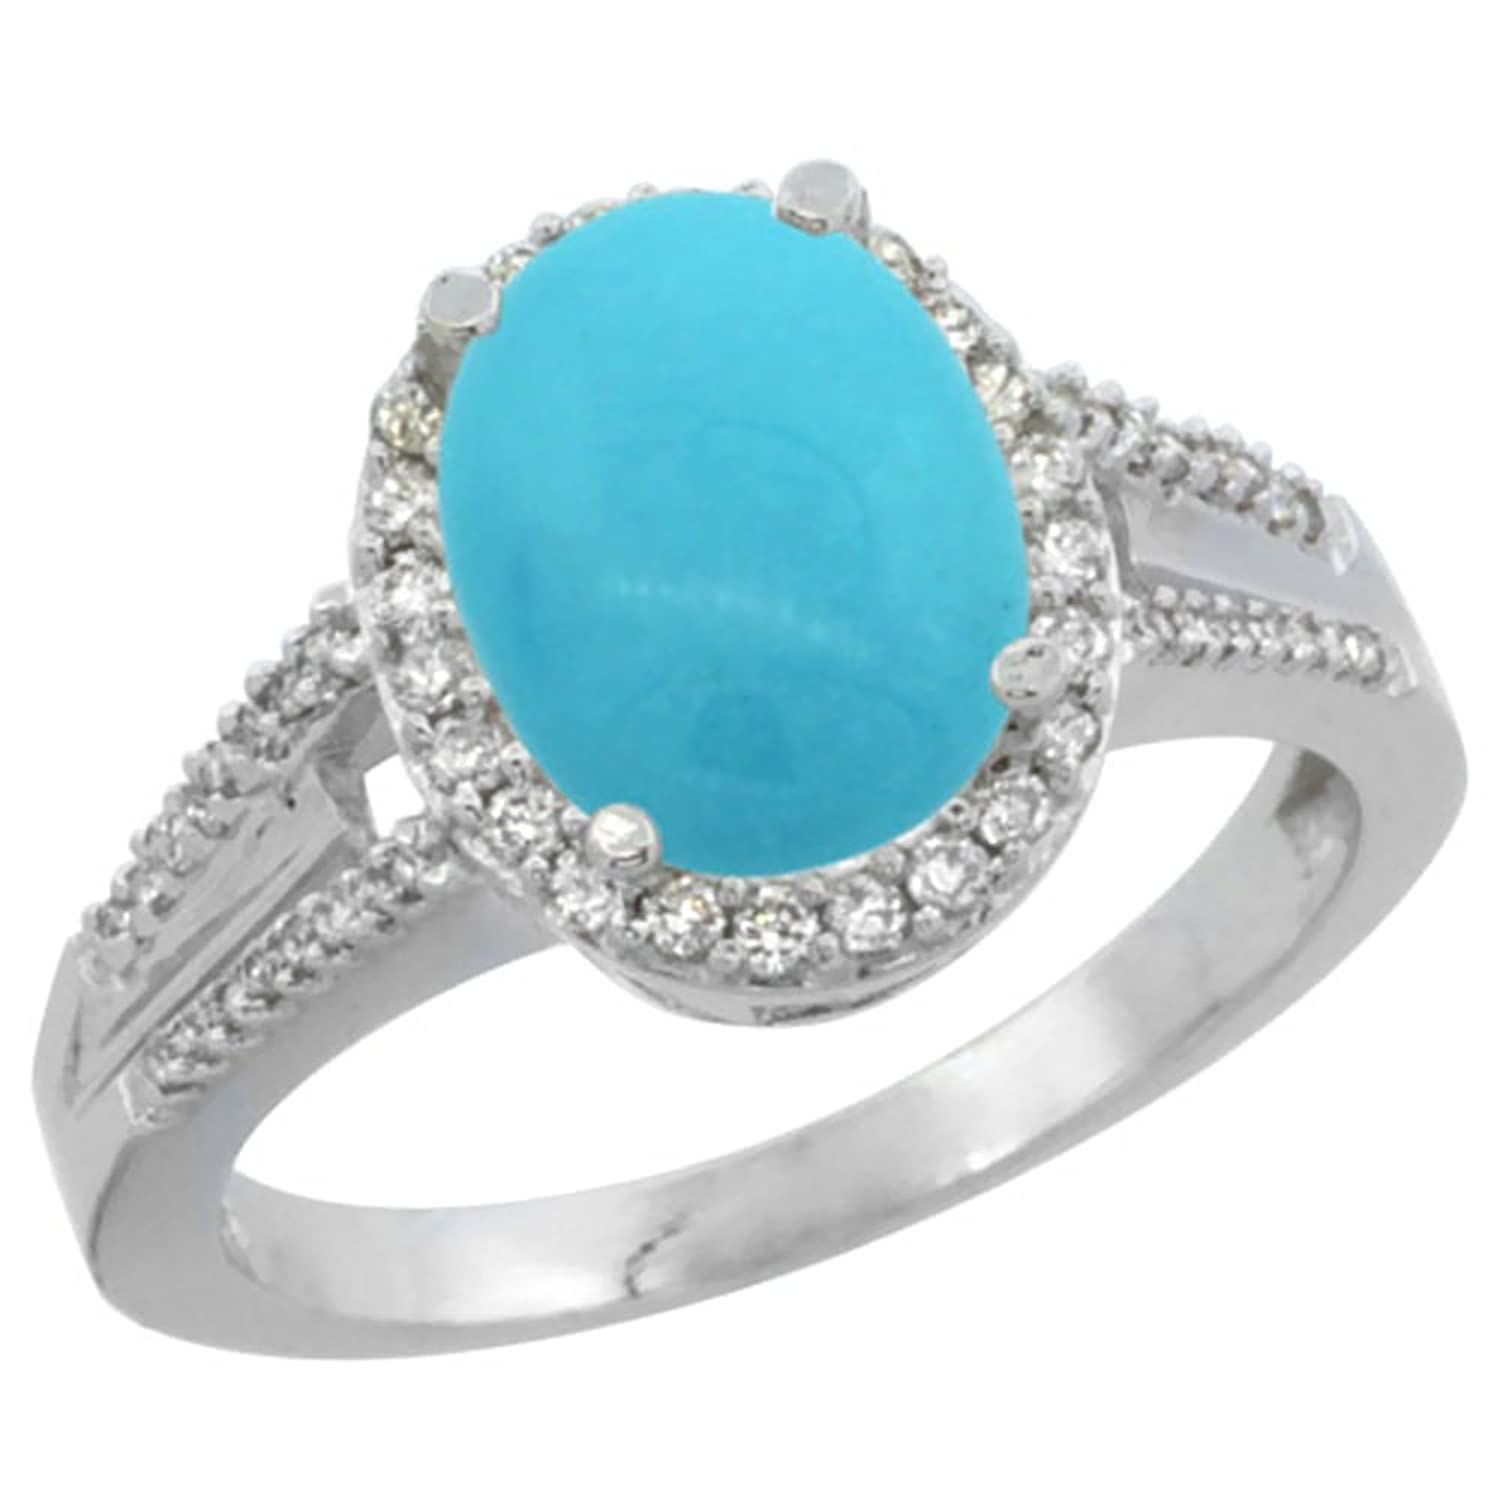 carat products wedding b artemer turquoise diamond ring diamonds rings with one stone boho and set sapphires